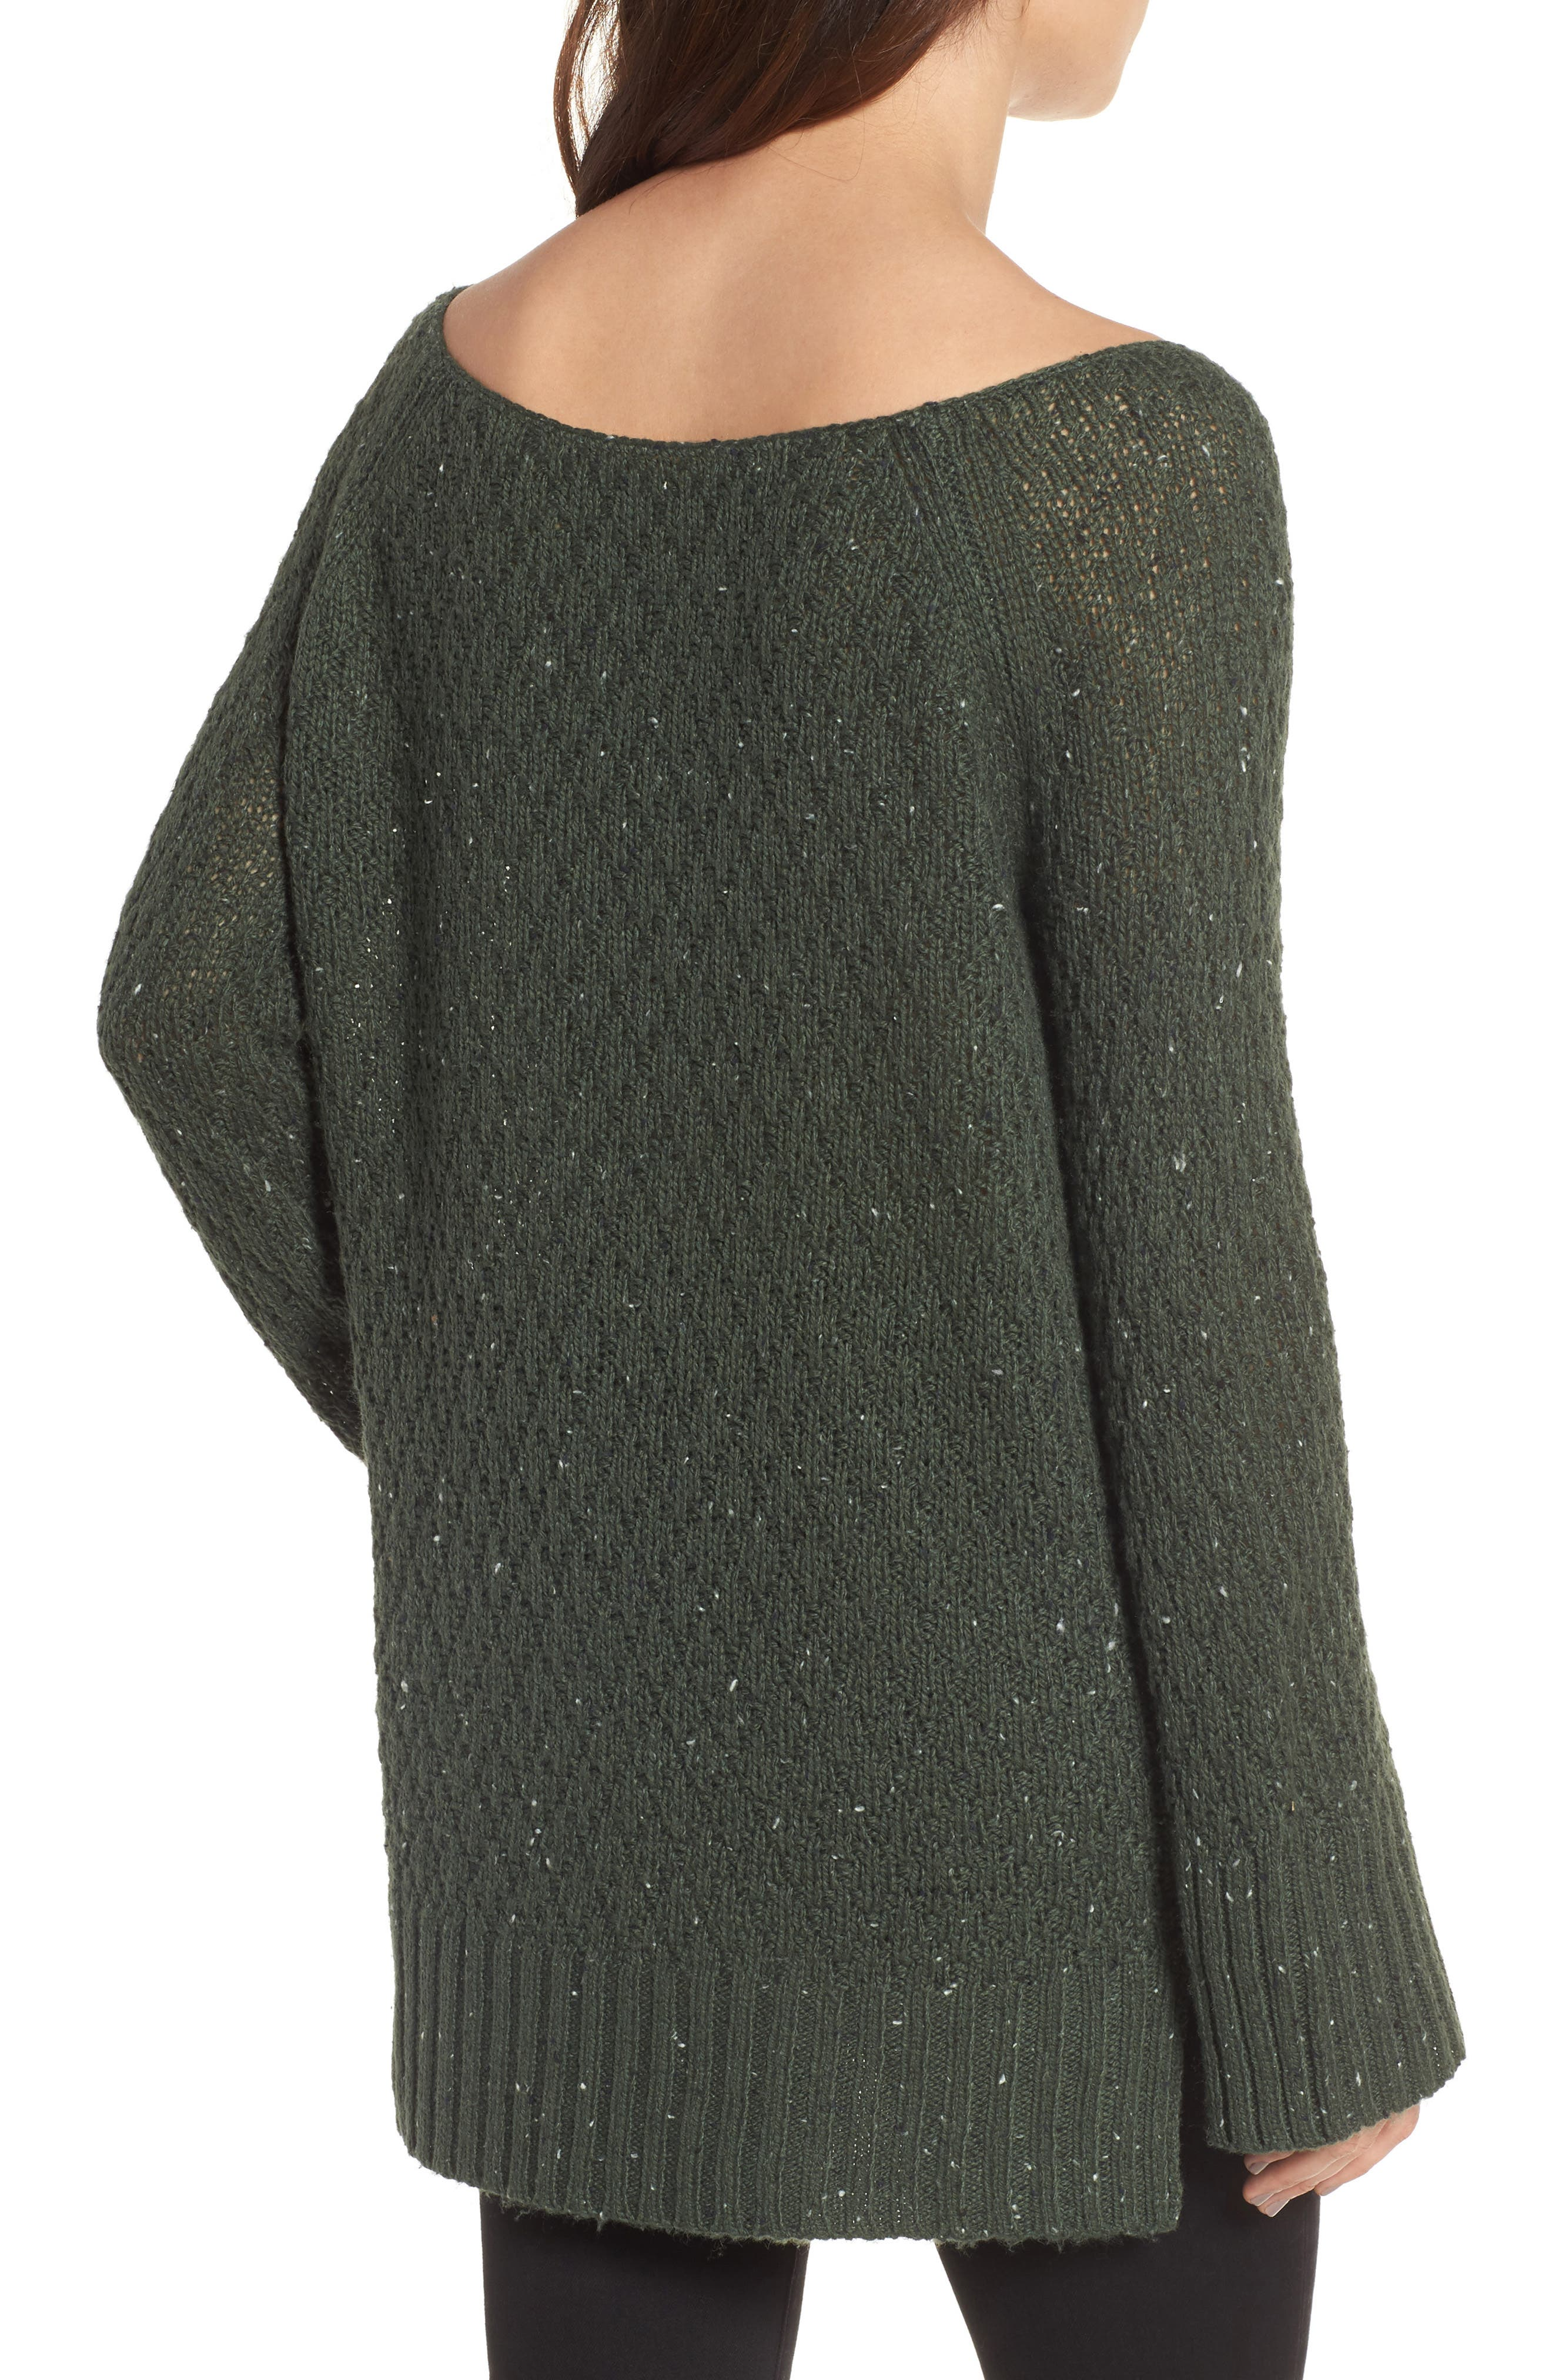 Slouchy Tunic Sweater,                             Alternate thumbnail 2, color,                             Green Wood